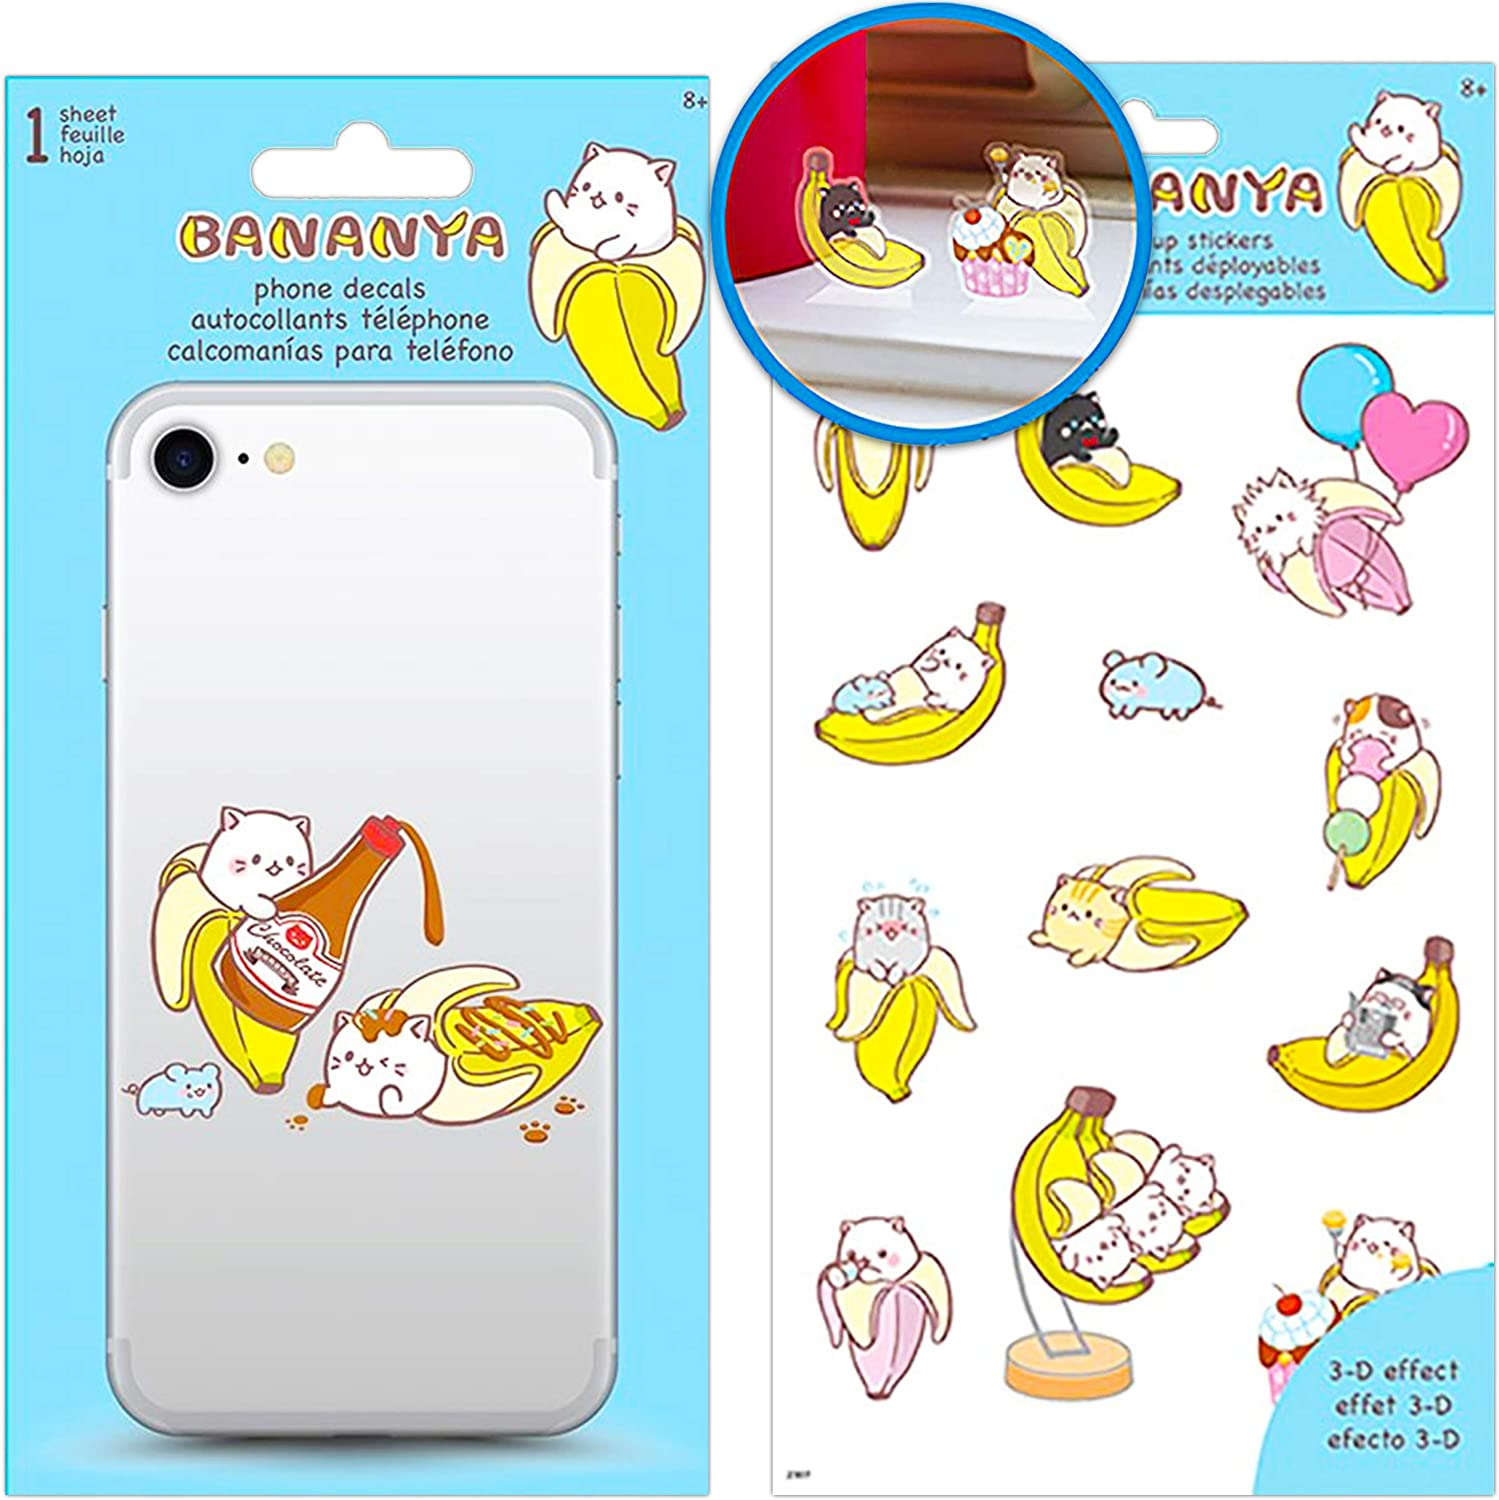 Bananya Sticker Set Bananya Phone Decal 2 Pc Bananya Sticker Set with Bananya Decal for Phones Bananya Gifts Bananya Party Supplies